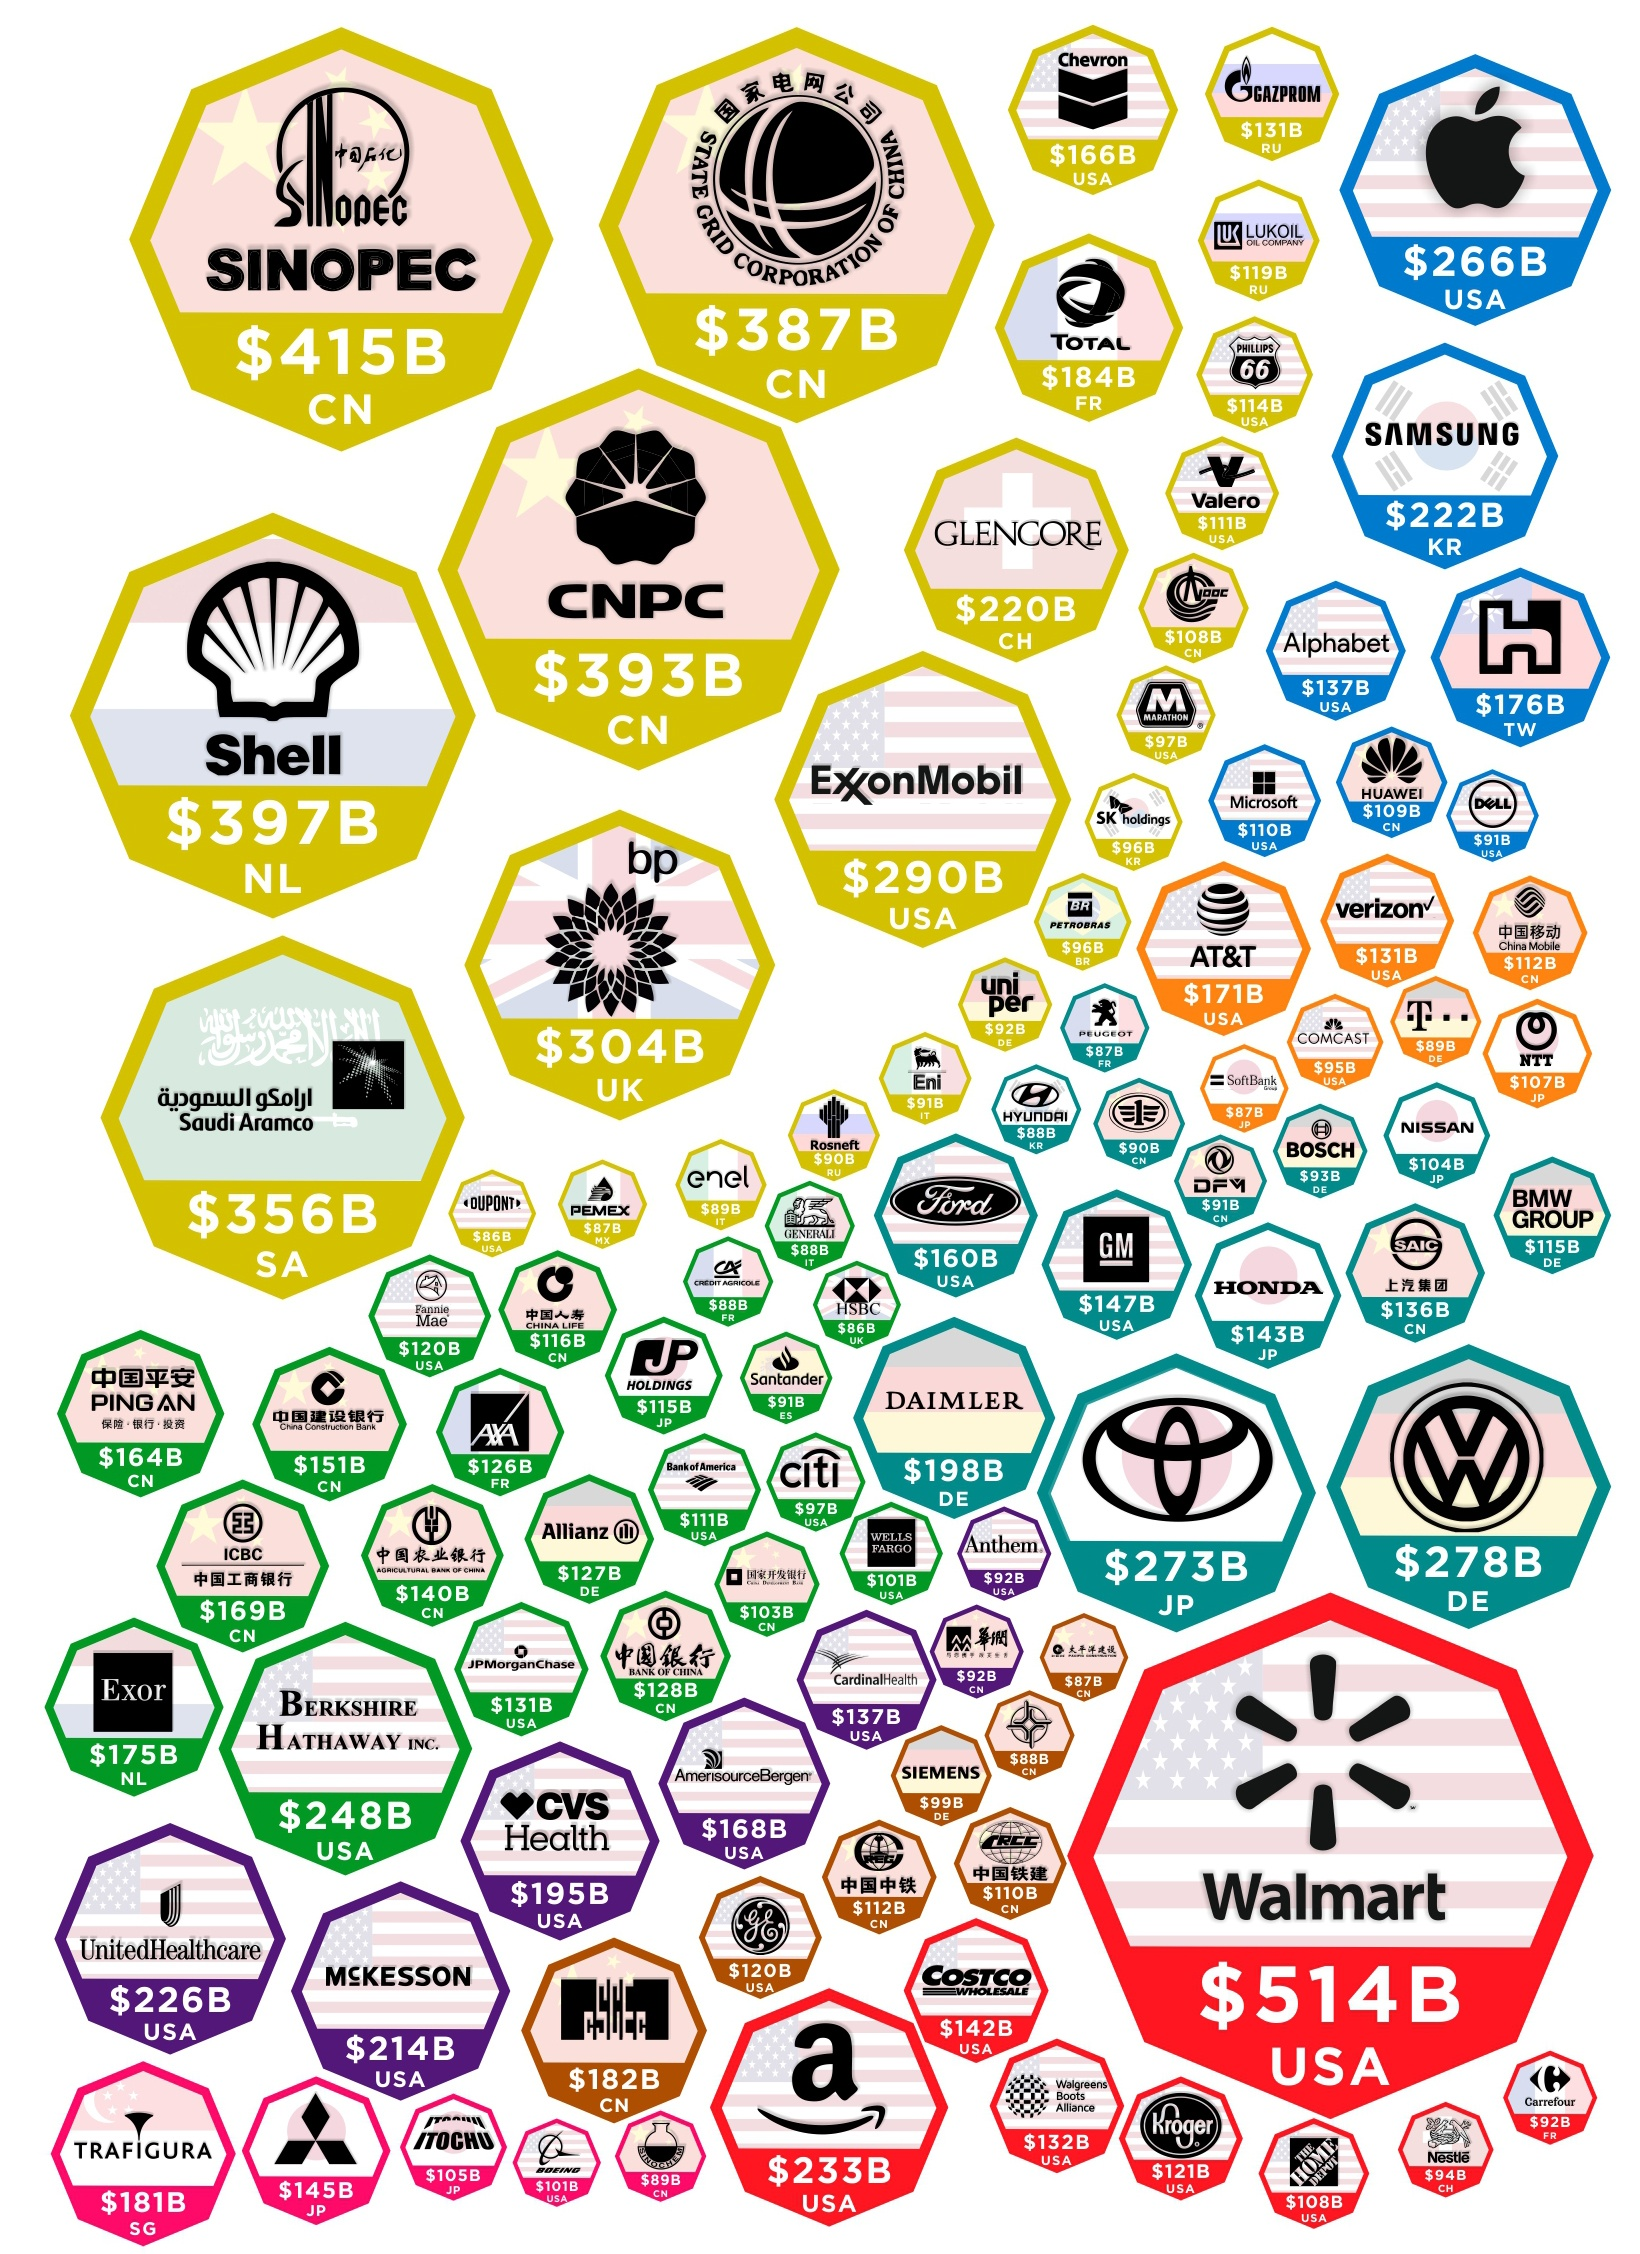 Charted: The Companies Making the Most Money in 2019